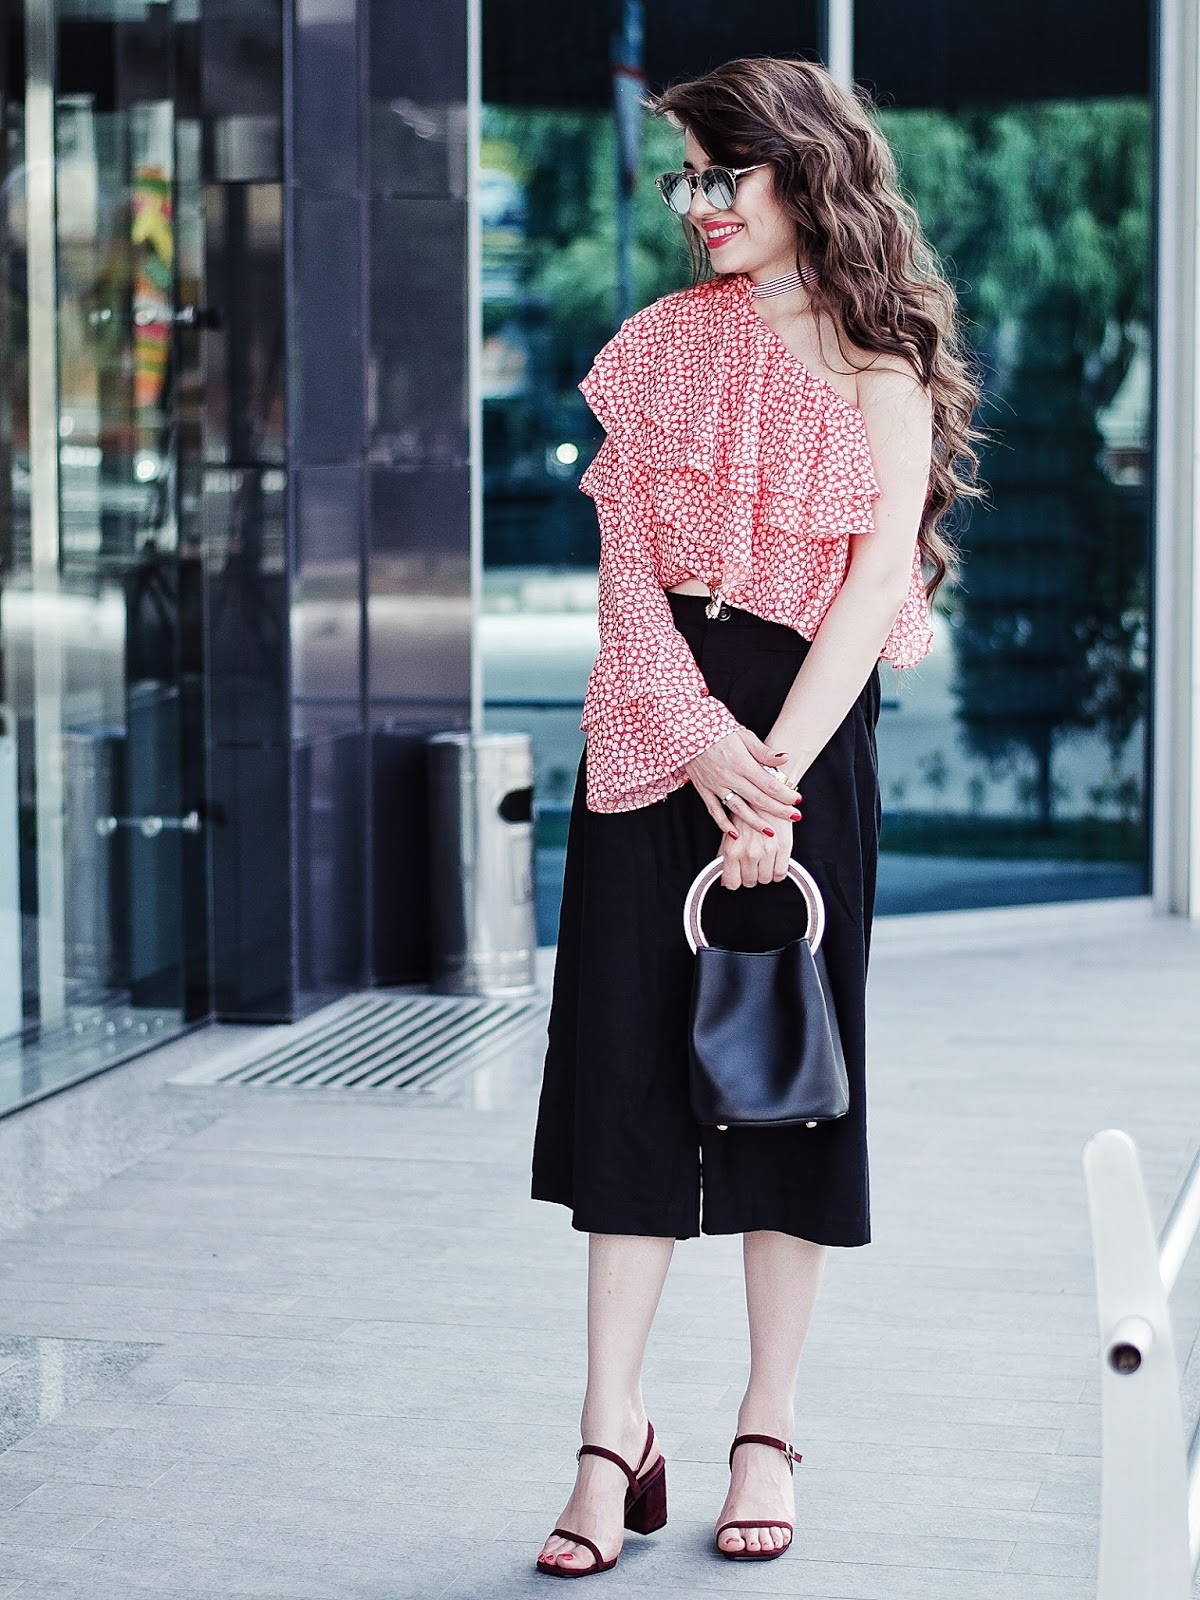 diyorasnotes diyora beta fashion blogger style outfitoftheday lookoftheday one shoulders blouse culottes curly hair